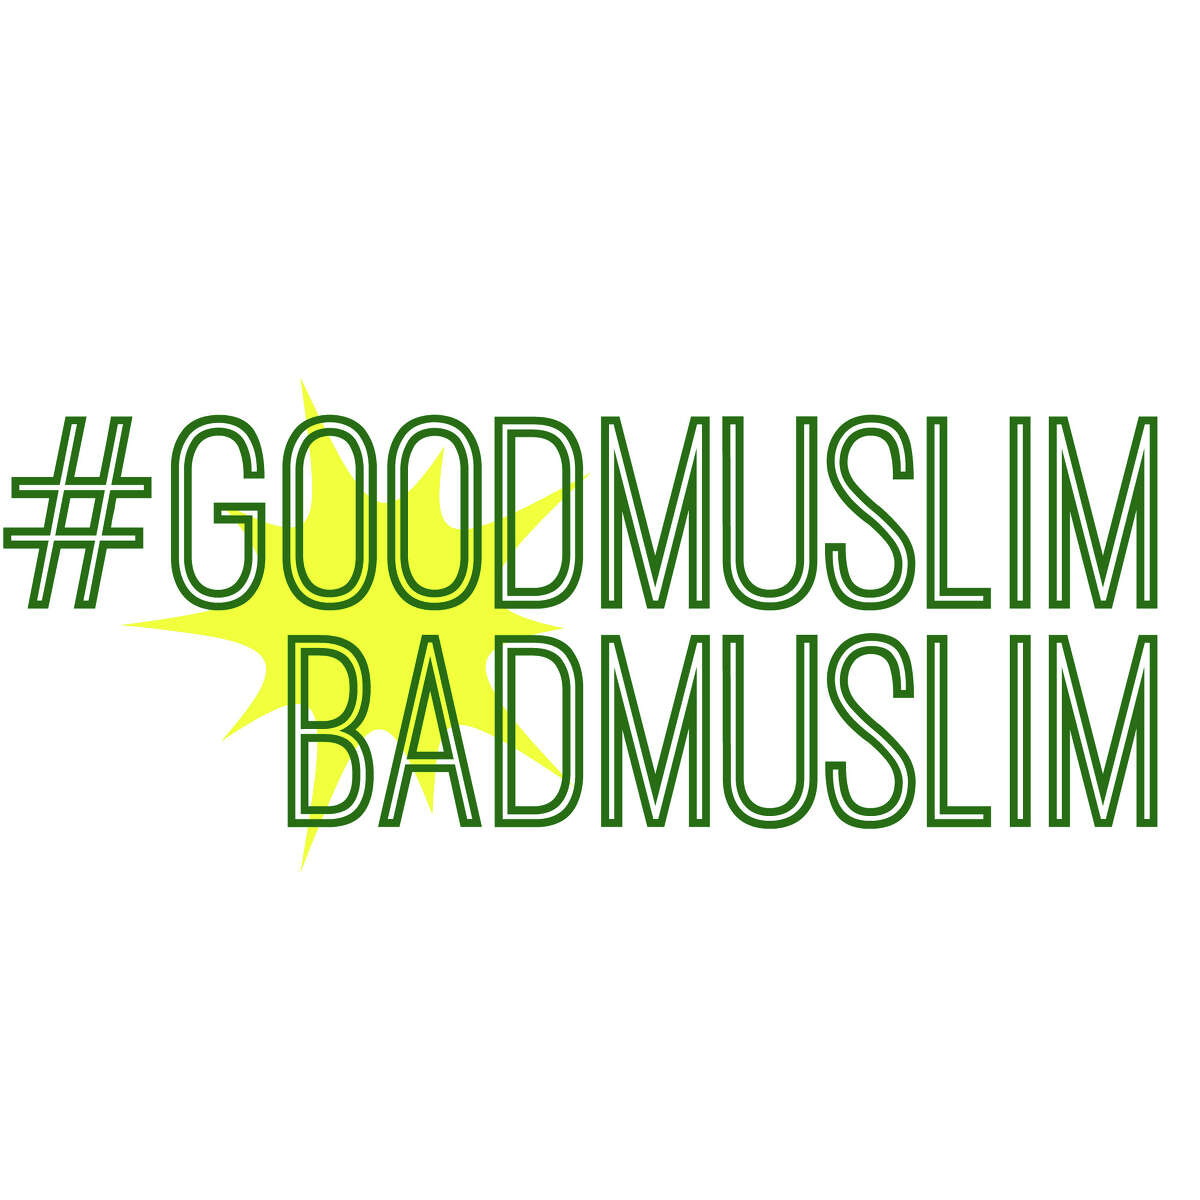 """With L.A.-based storyteller and activist Tanzila Ahmed and local writer-comedian Zahra Noorbakhsh on the mic, the new monthly """"Good Muslim Bad Muslim"""" podcast explores what it means to be Muslim in America through politics, pop culture and humor. www.goodmuslimbadmuslim.com"""